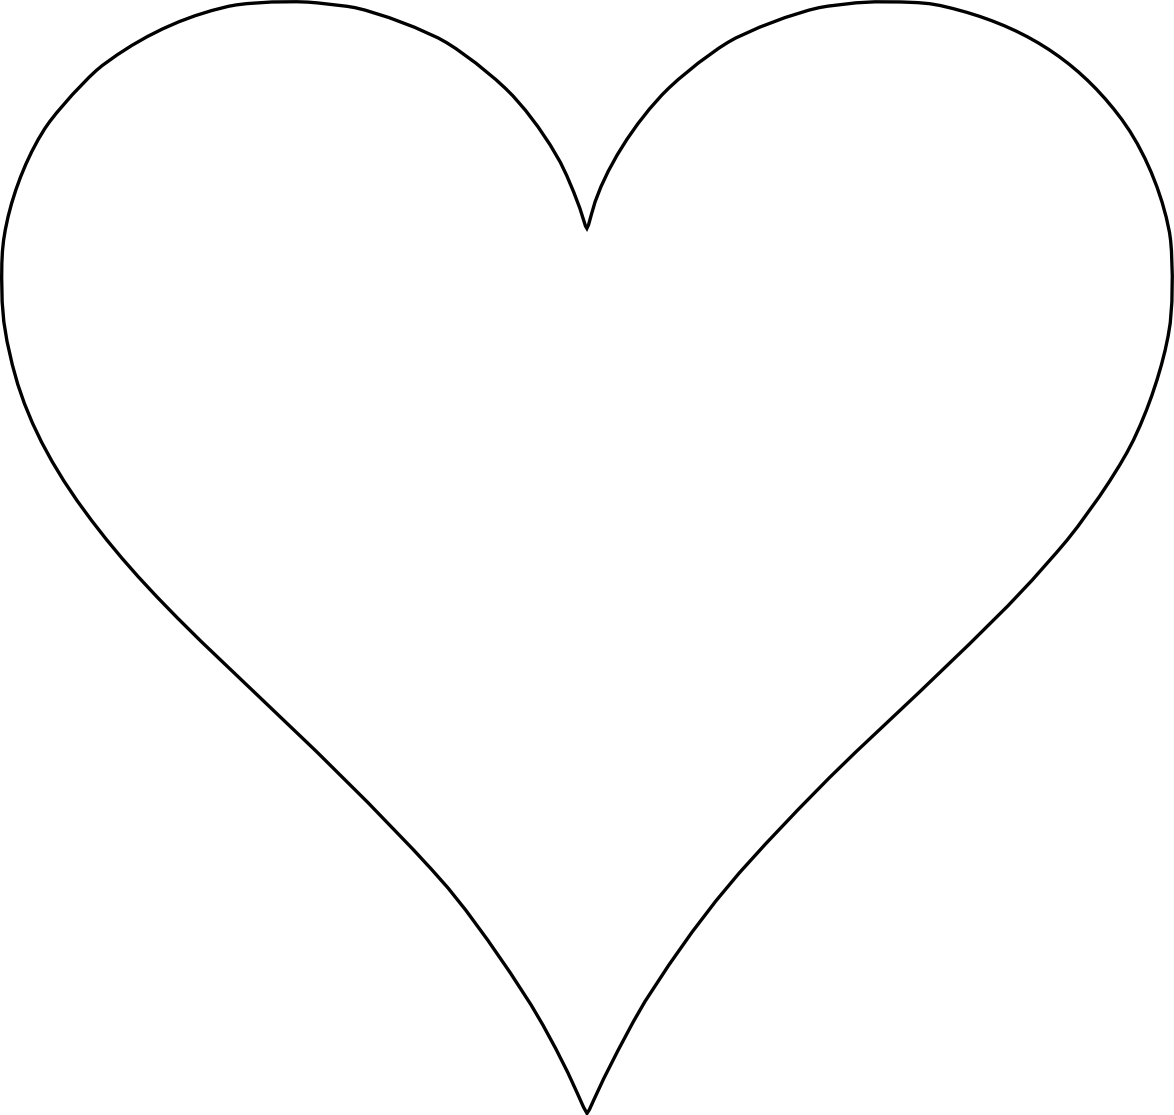 heart images free printable